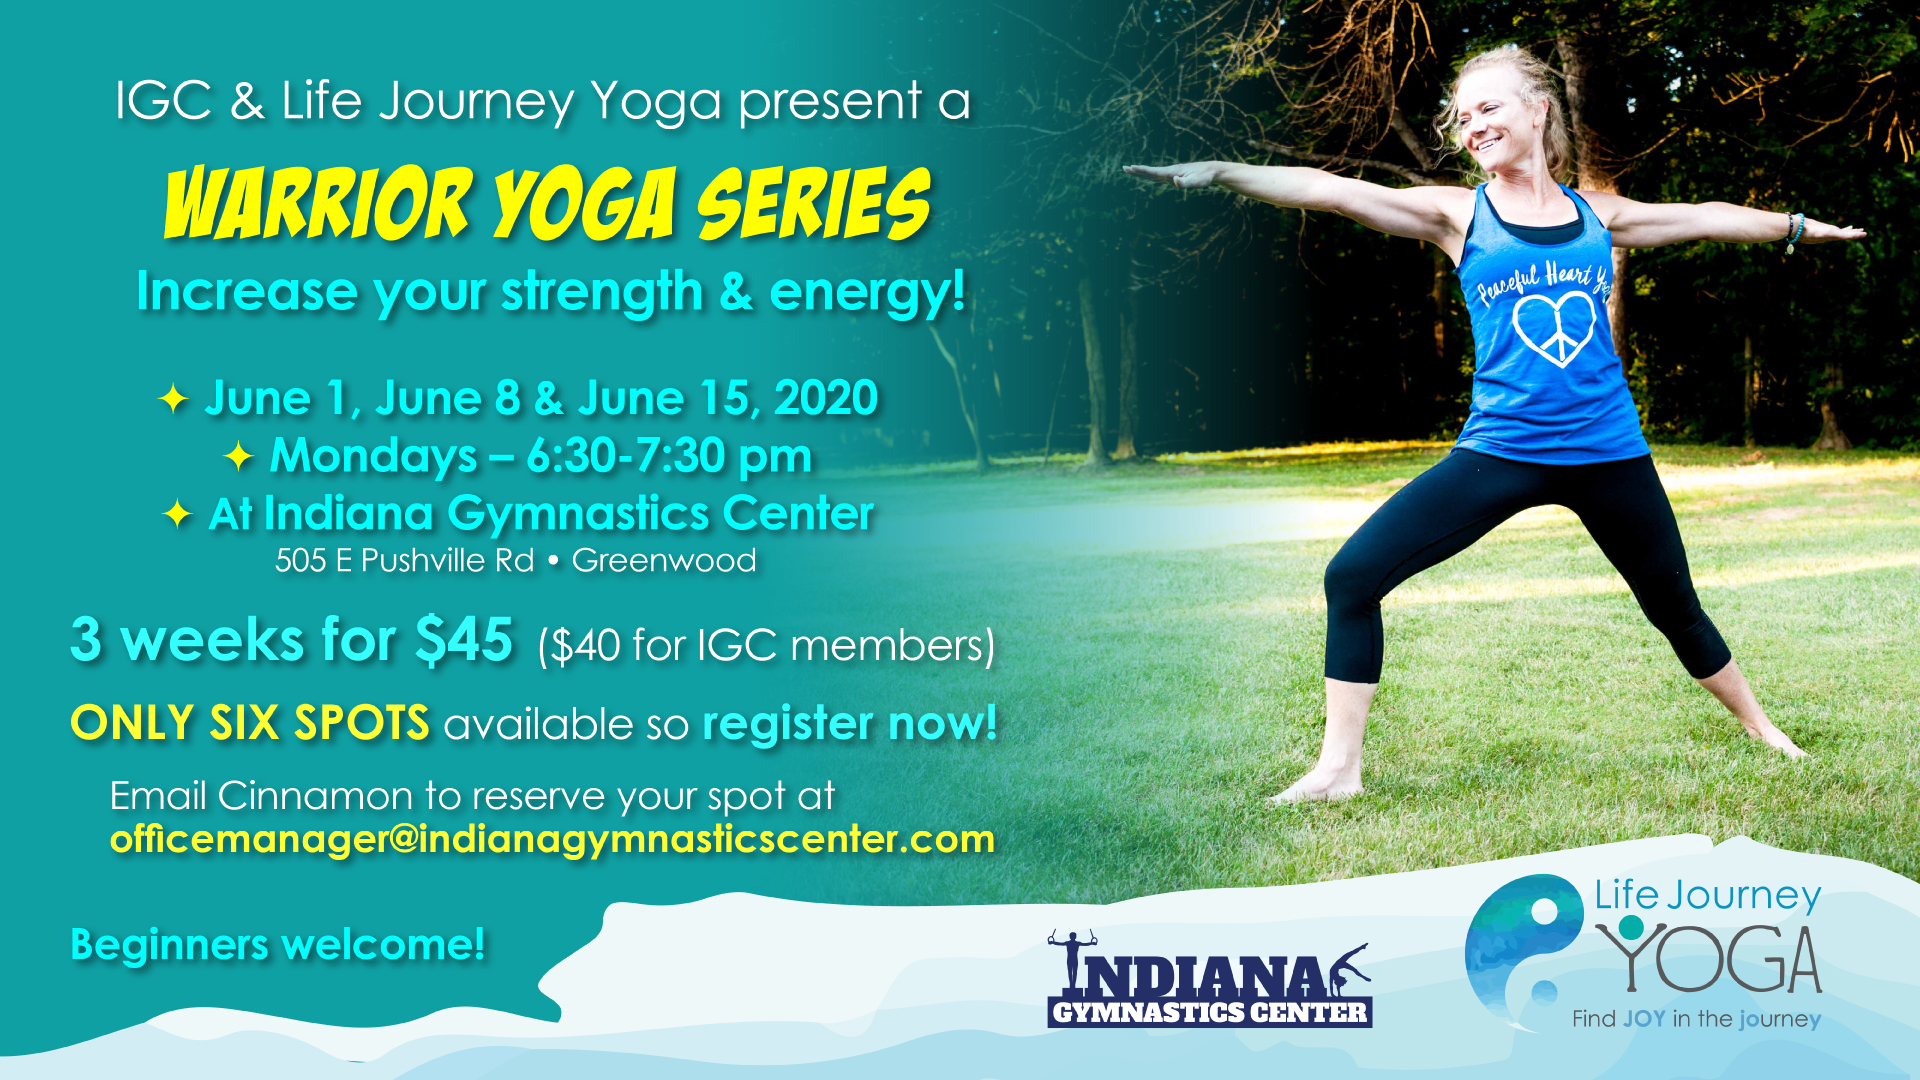 Warrior Series Yoga | Life Journey Yoga | Indiana Gymnastics Center